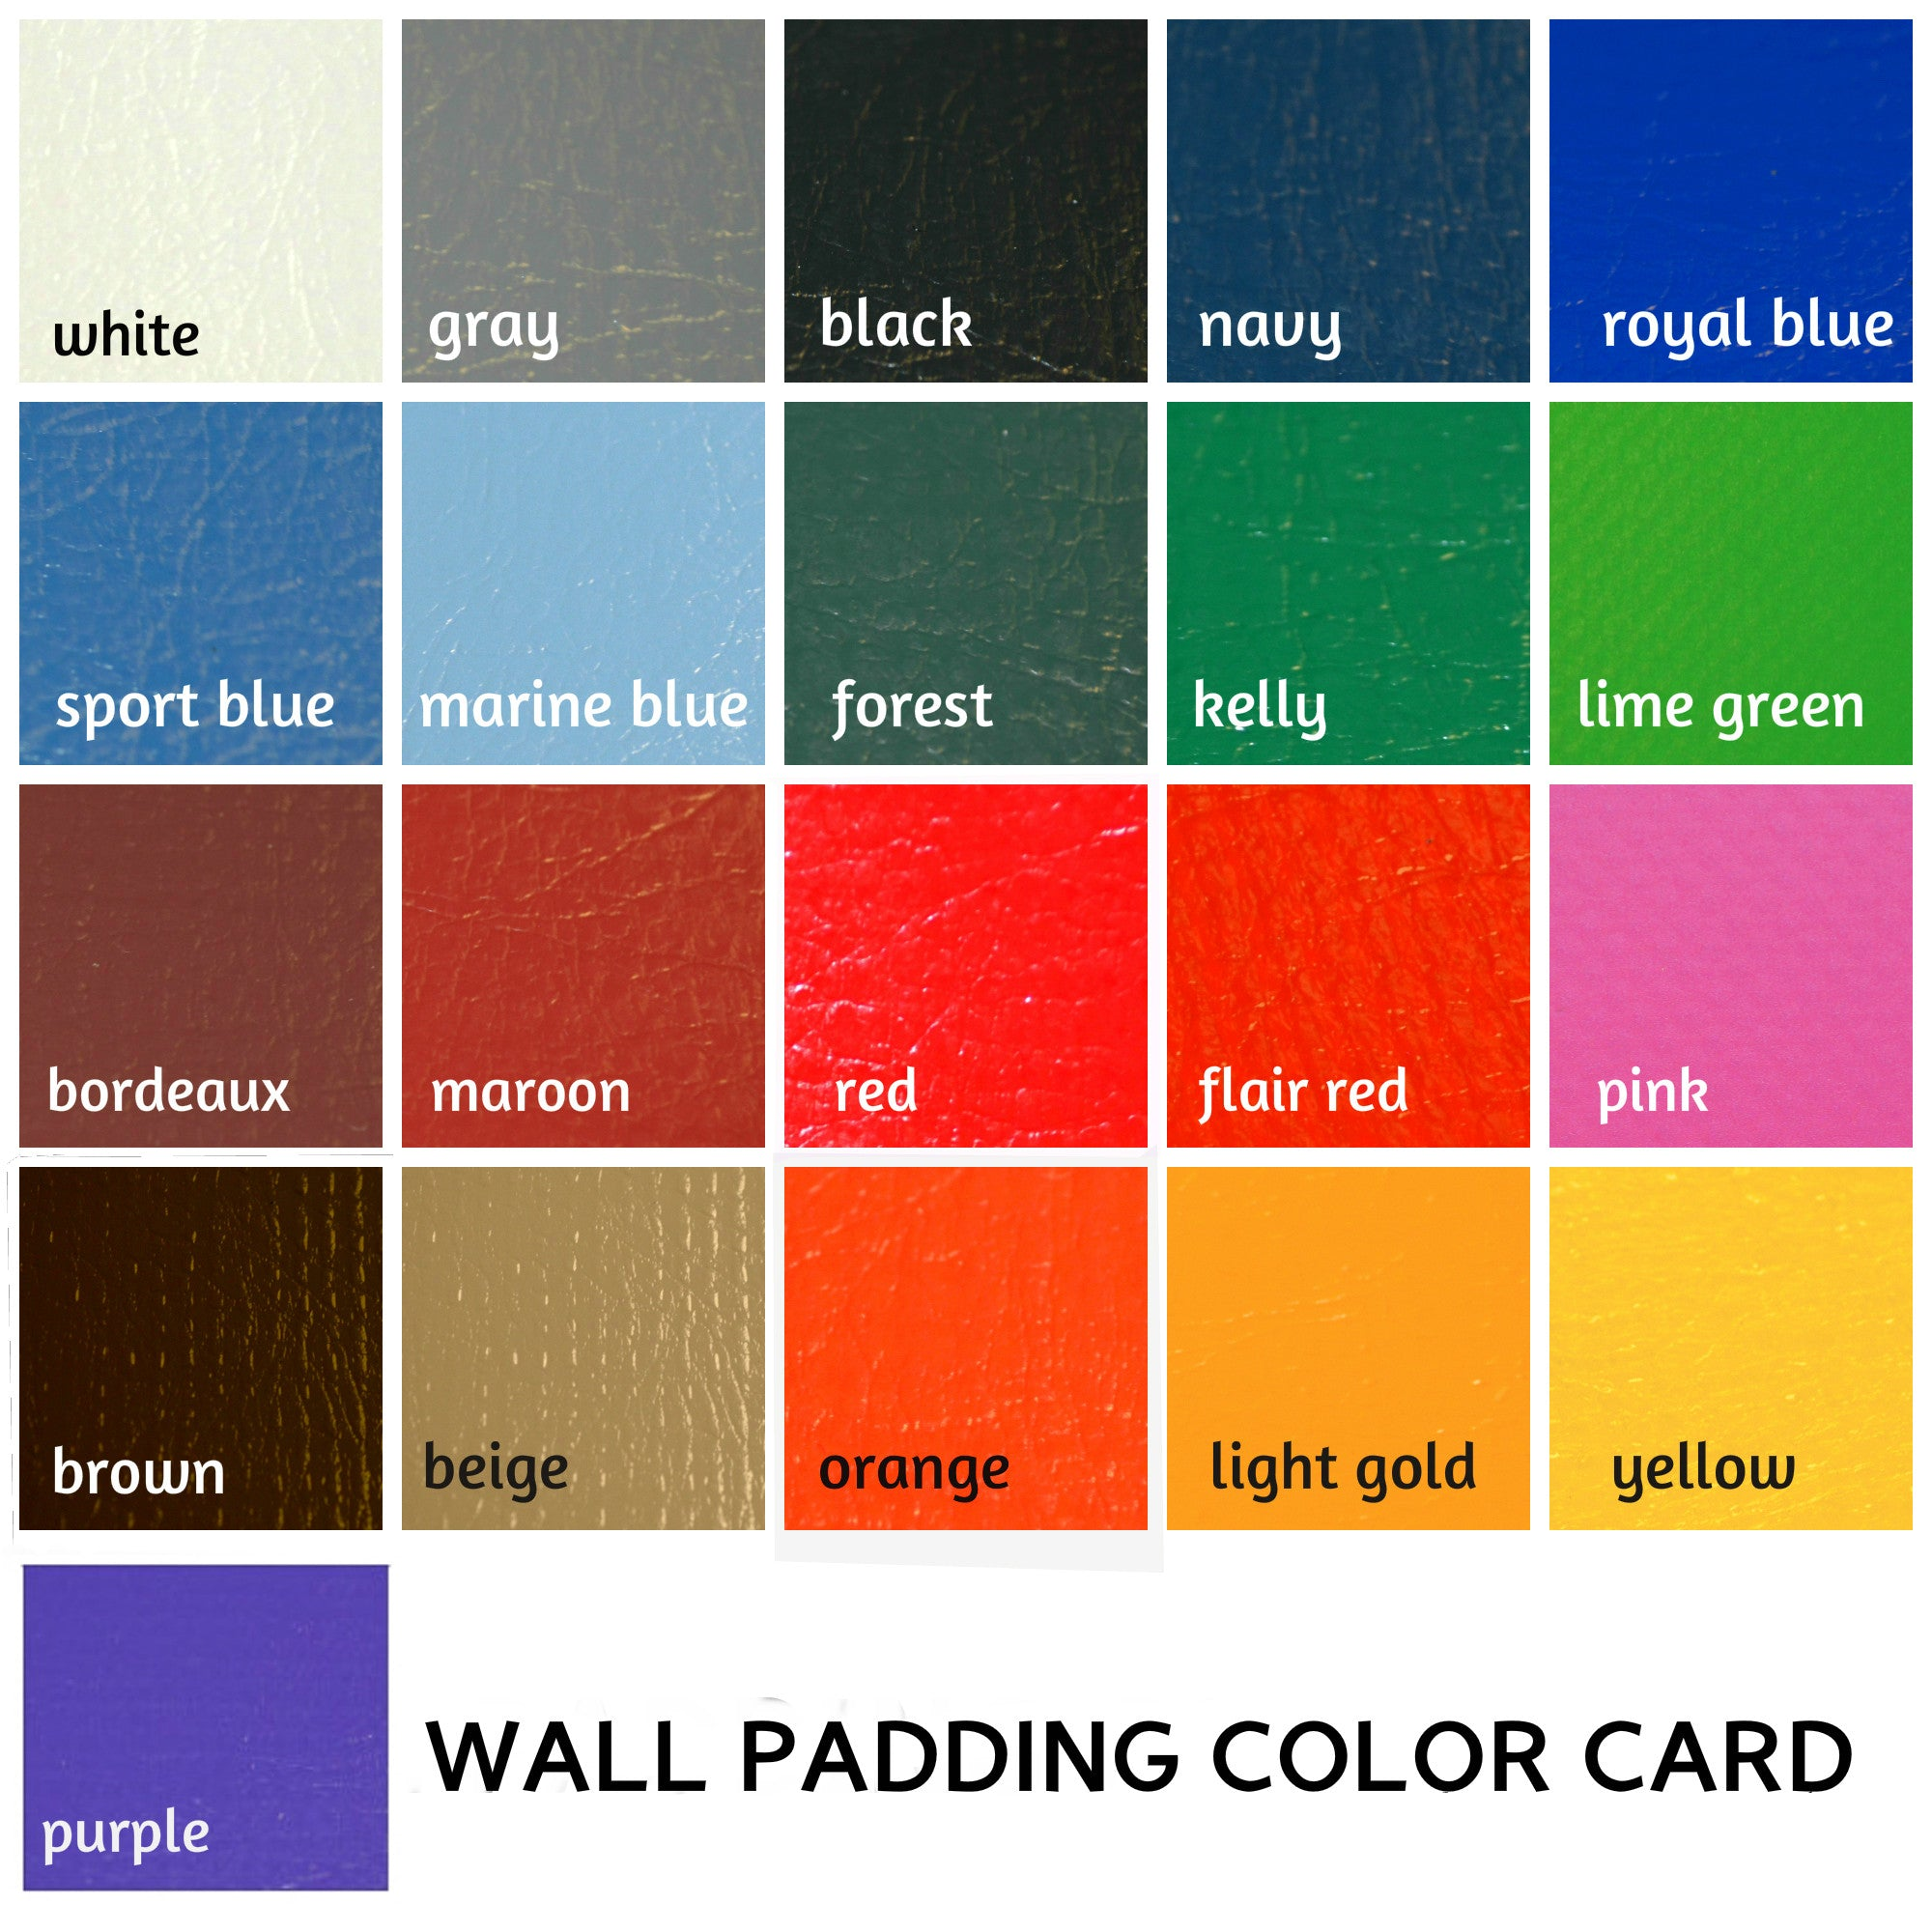 Colors Available for Custom Wall Padding